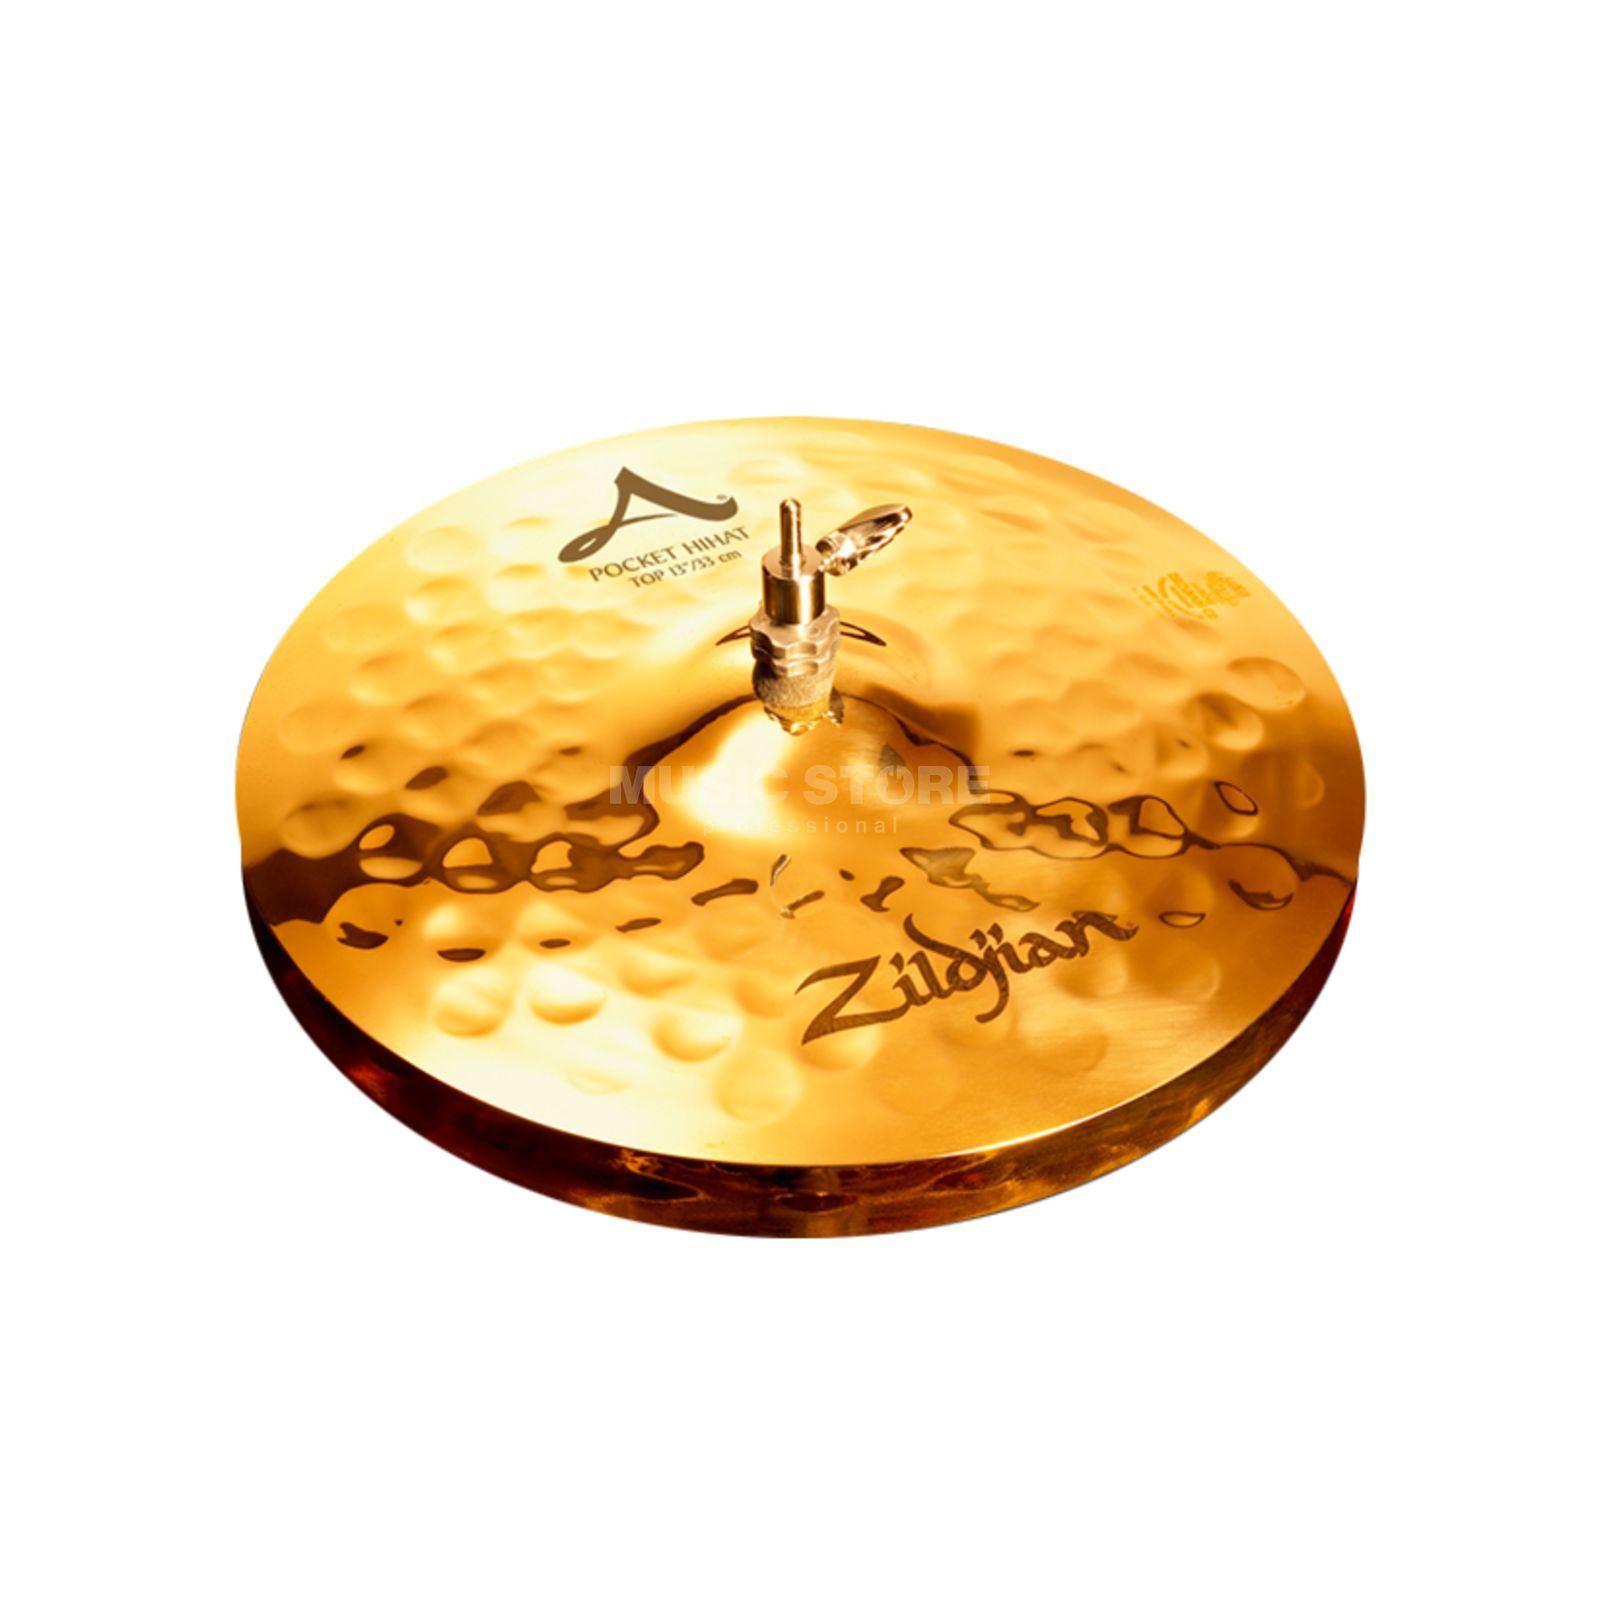 "Zildjian A' Zildjian Pocket HiHat 13"", Brilliant Finish Produktbild"